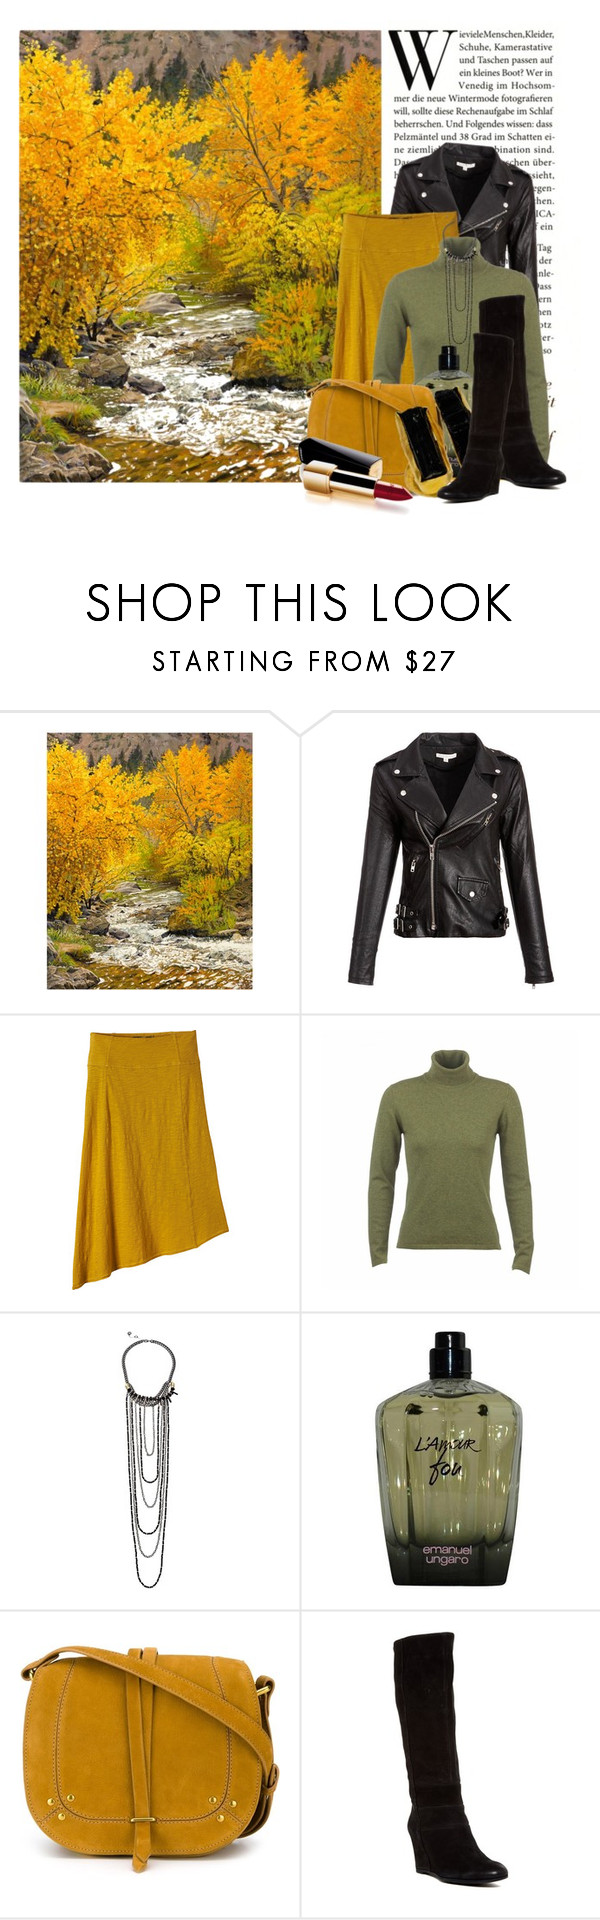 """A Mountain Stream"" by queenrachietemplateaddict ❤ liked on Polyvore featuring Grandin Road, prAna, French Connection, Emanuel Ungaro, Jérôme Dreyfuss, Geox, Mapleton Drive and Chanel"